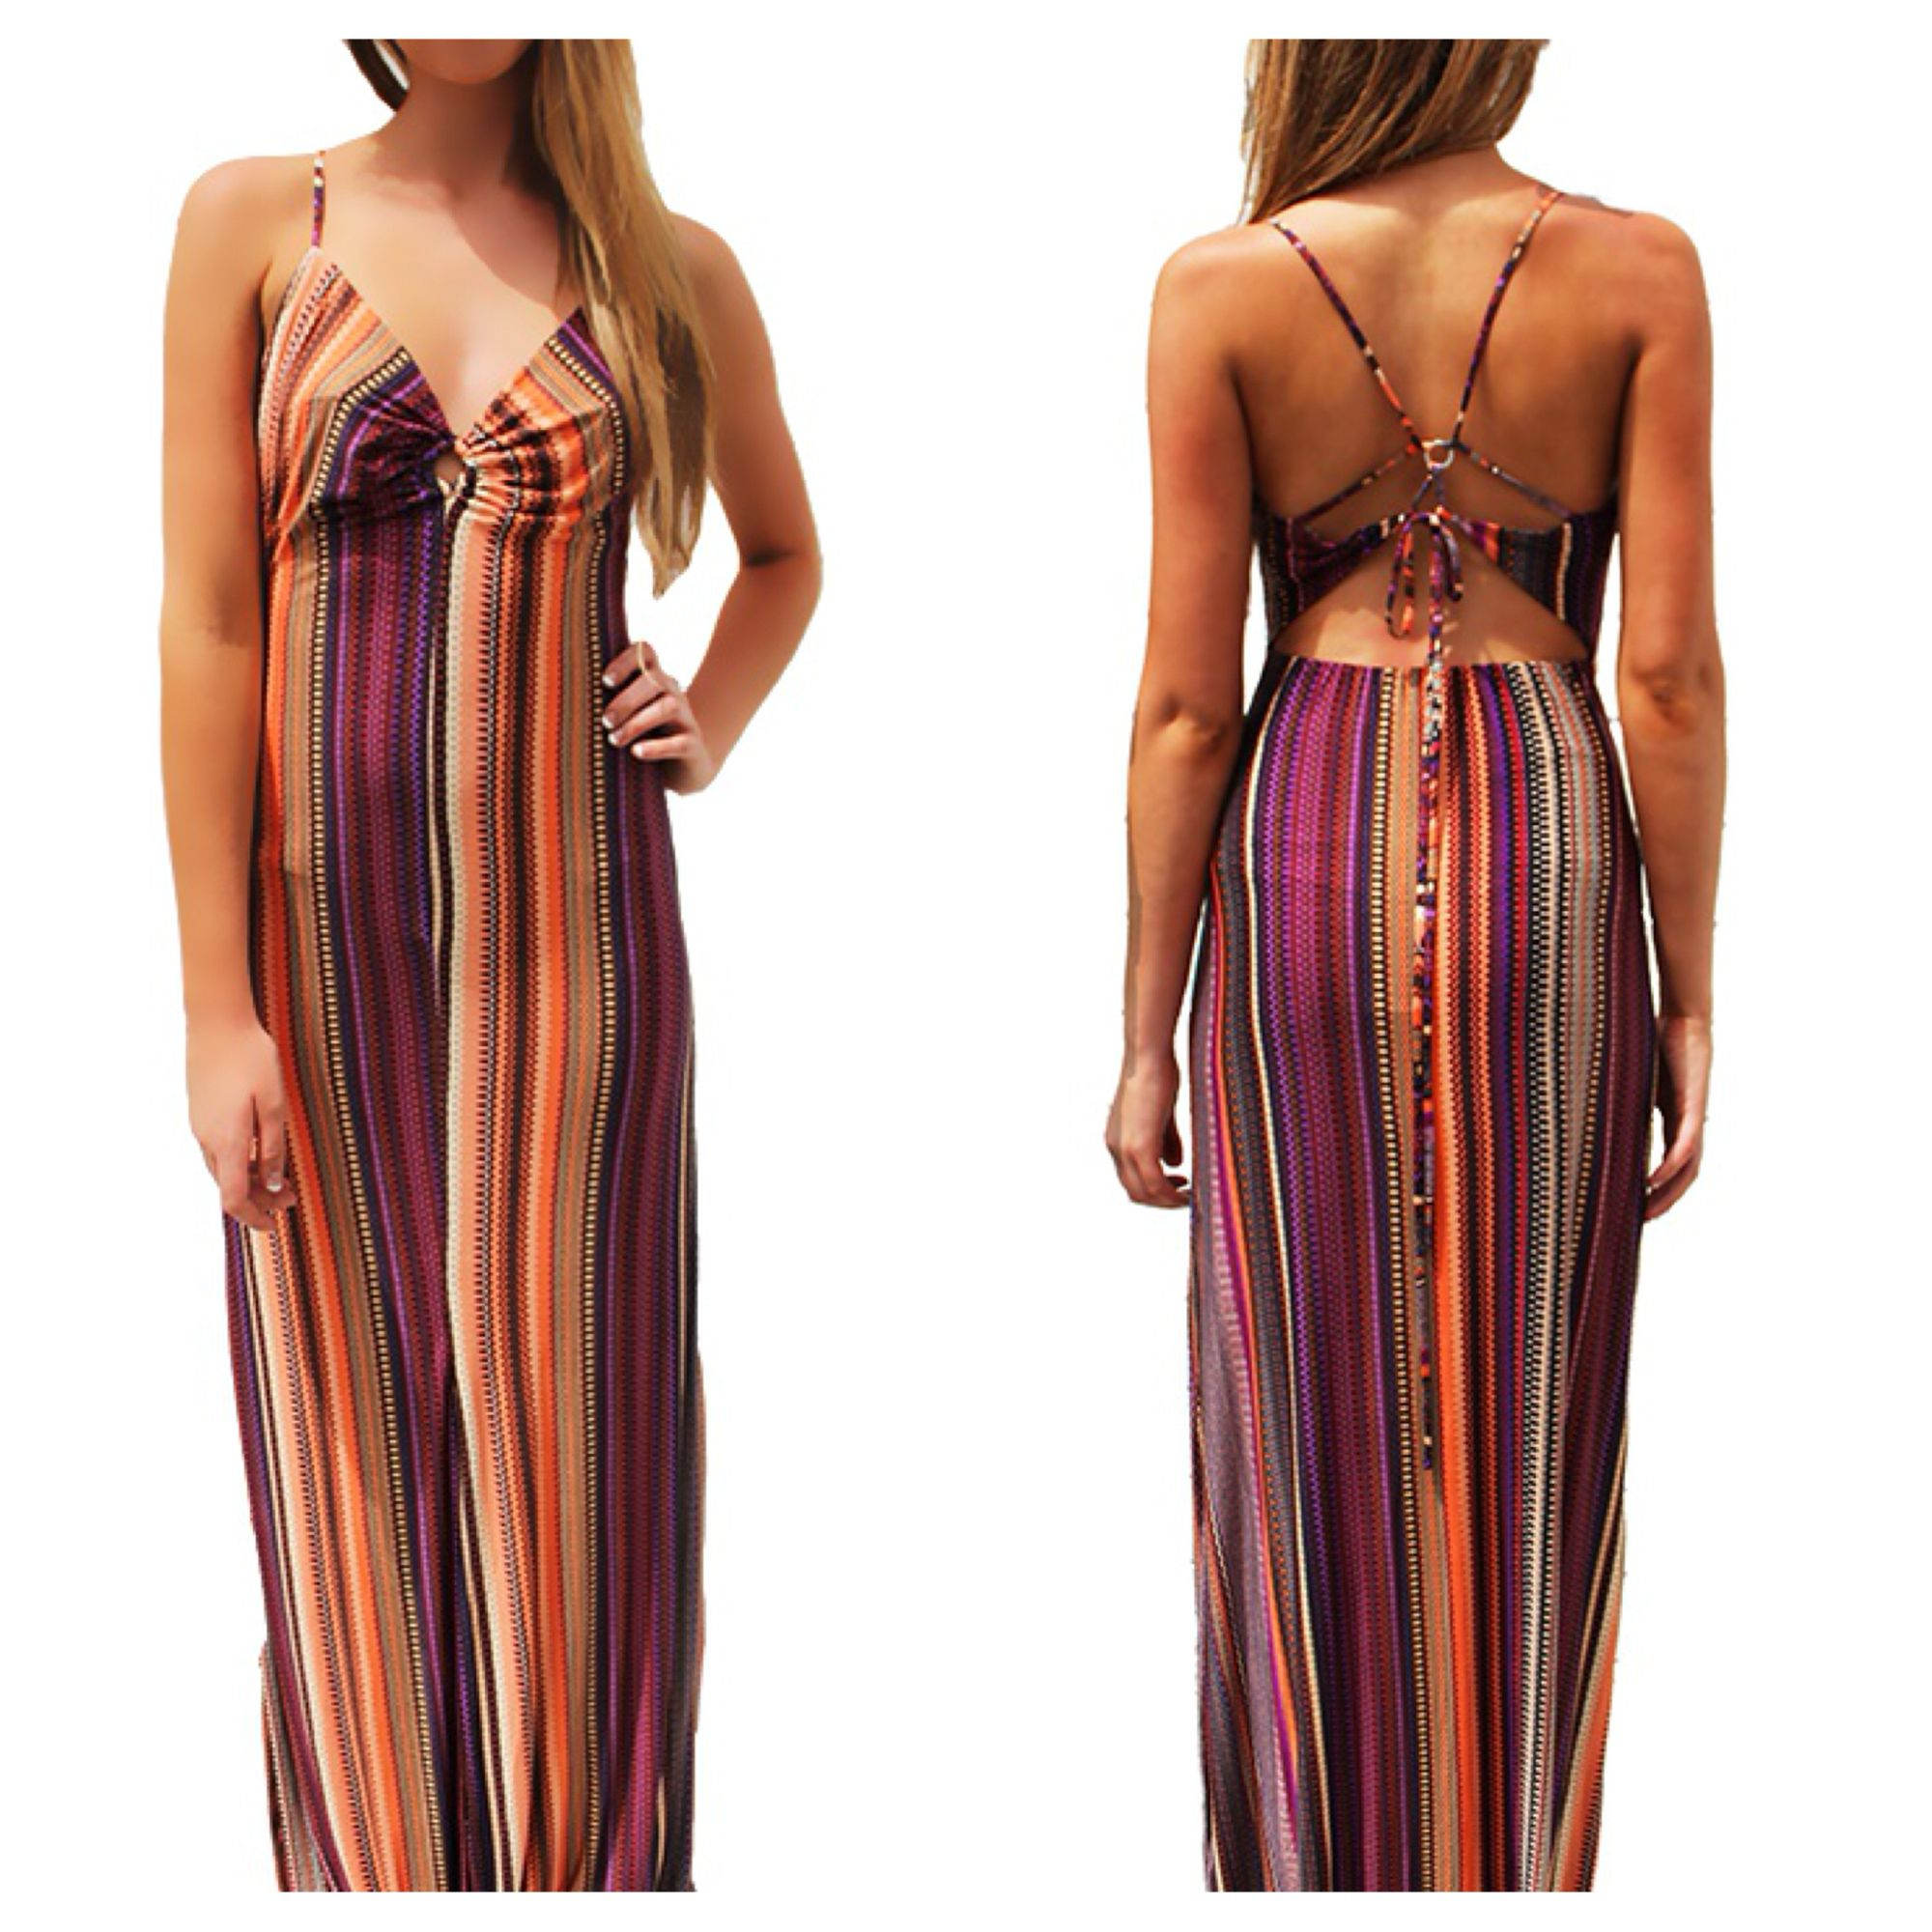 New Arrivals this Week at BeachCandy in #CoronaDelMar!!! The MIKA MAXI is our Favorite of the Day!!!  #BestSeller #OnlyTheBestAtBC #OnlyAFewLeft #Shop  #BeachCandy #LookYourBest #Summertime #BikiniLife #NationalLipstickDay #HeatWave #California #Love - $98 - Call BeachCandy Shop to Order 949.640.0988